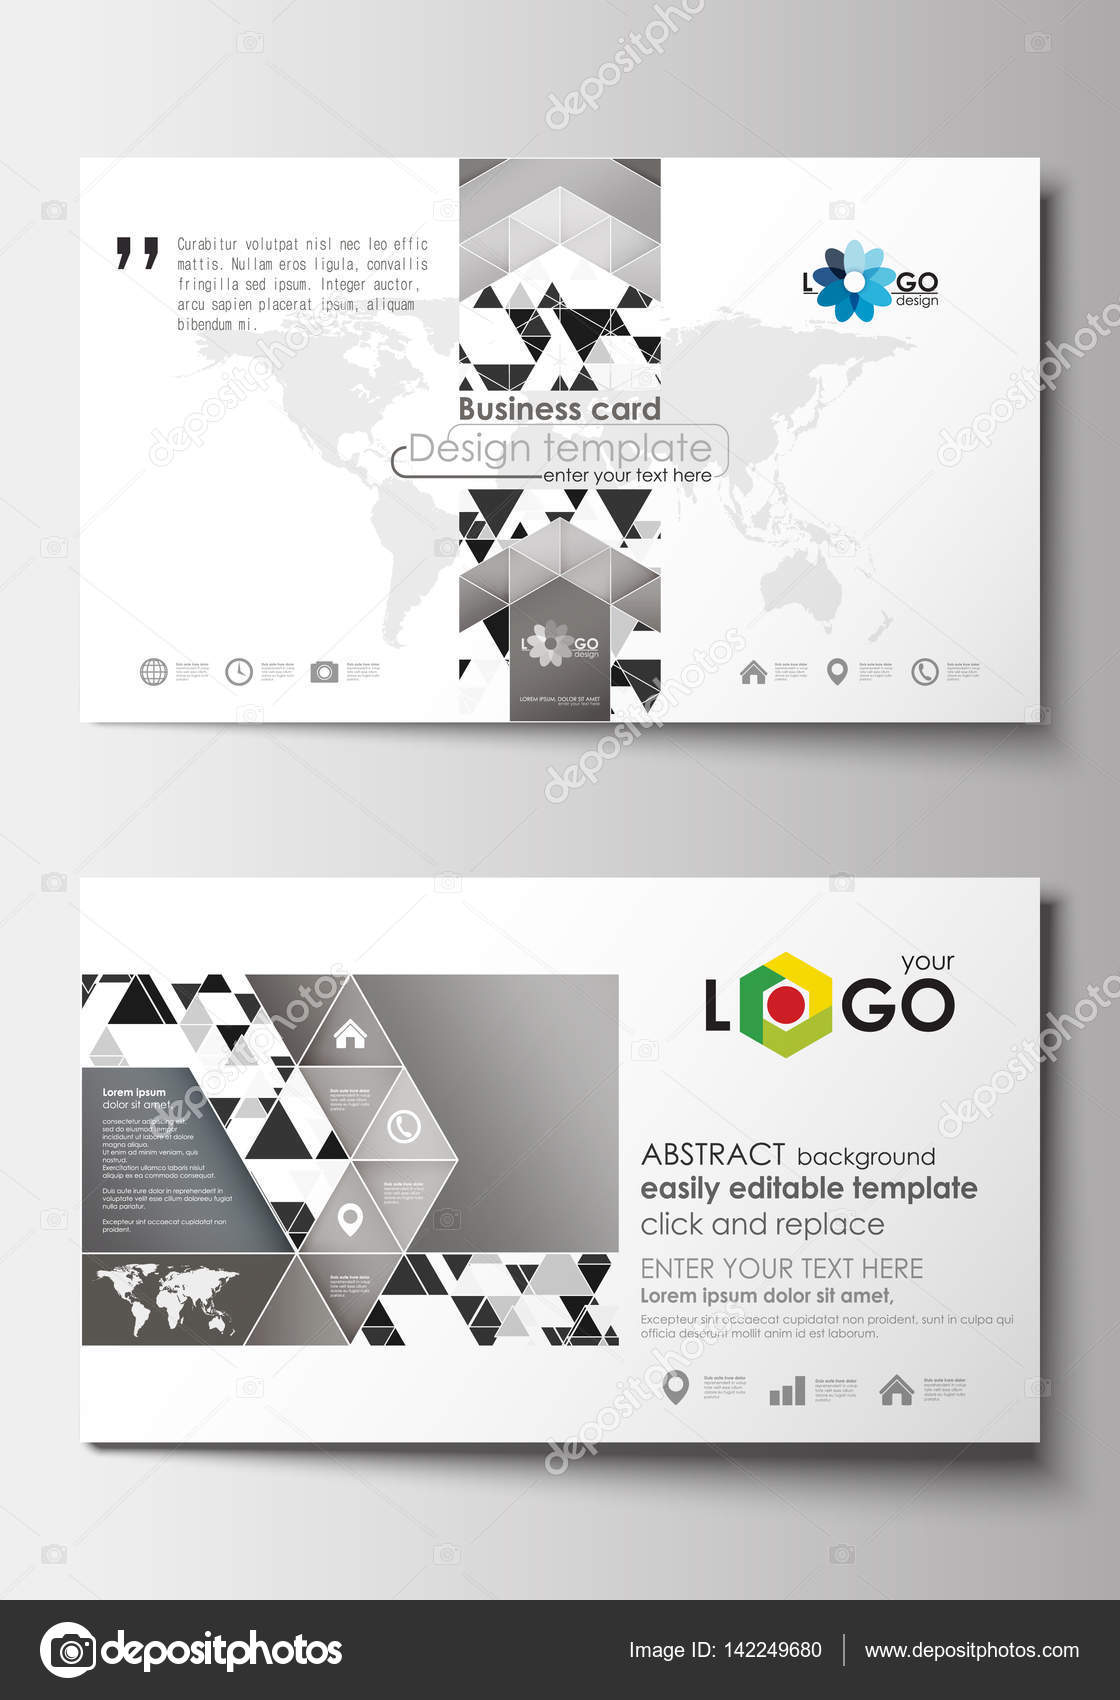 Business card templates cover template easy editable blank flat business card templates cover design template easy editable blank abstract flat layout abstract triangle design background modern gray color polygonal alramifo Images